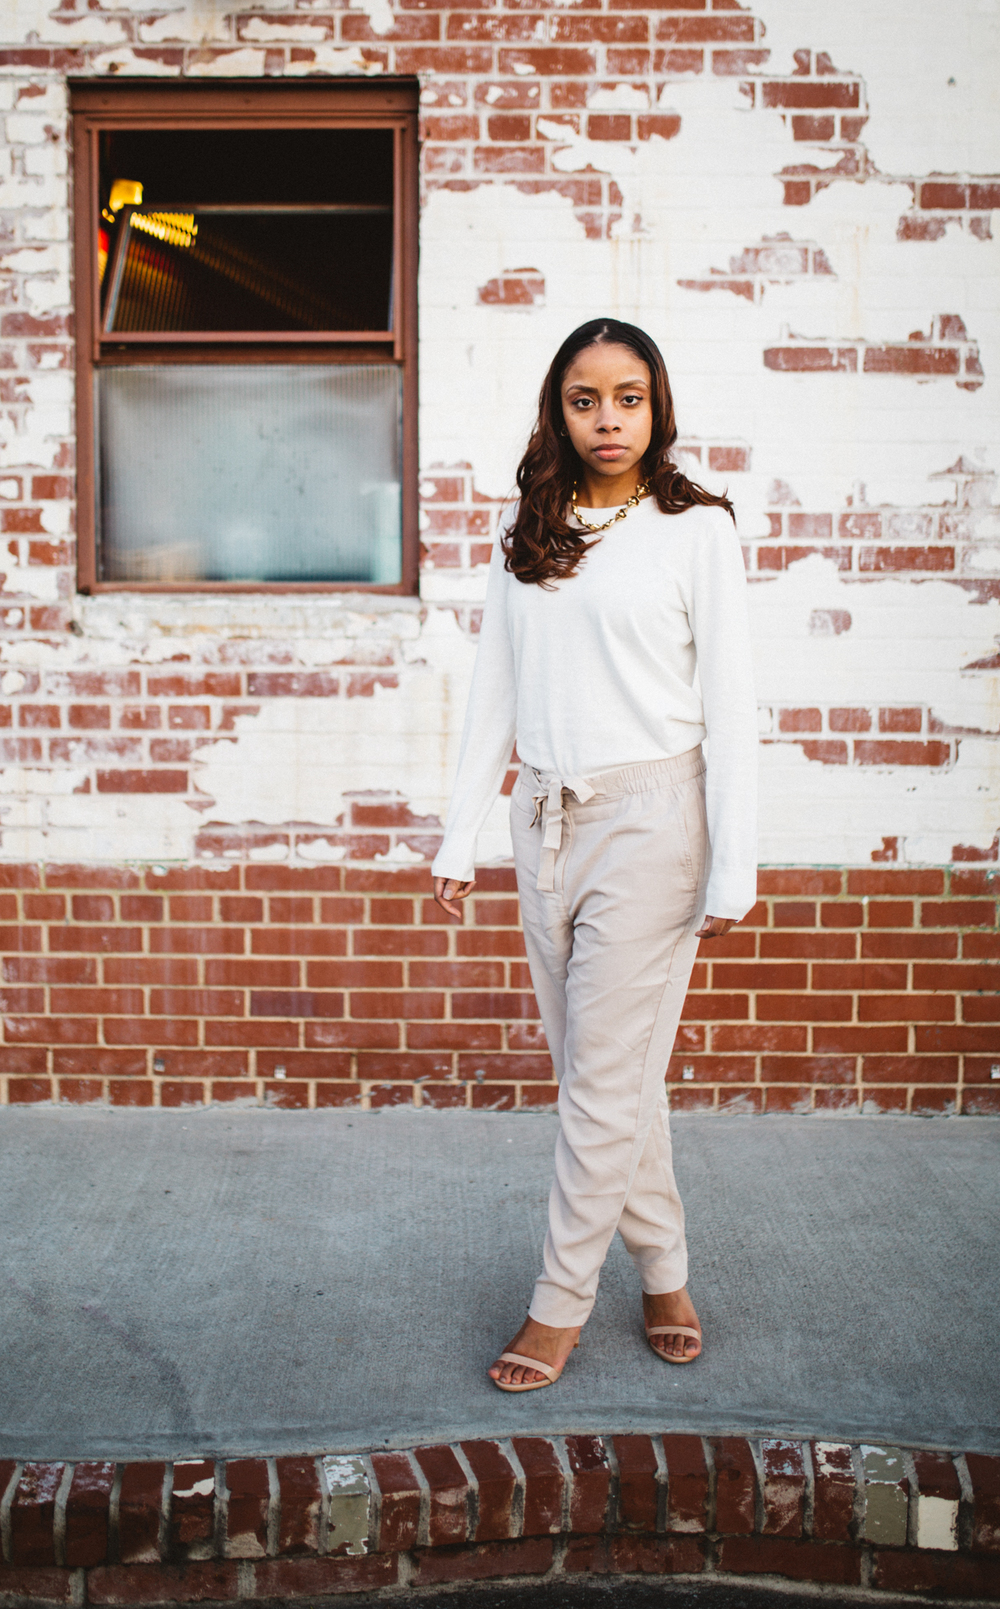 Professional, urban portrait in Durham, NC